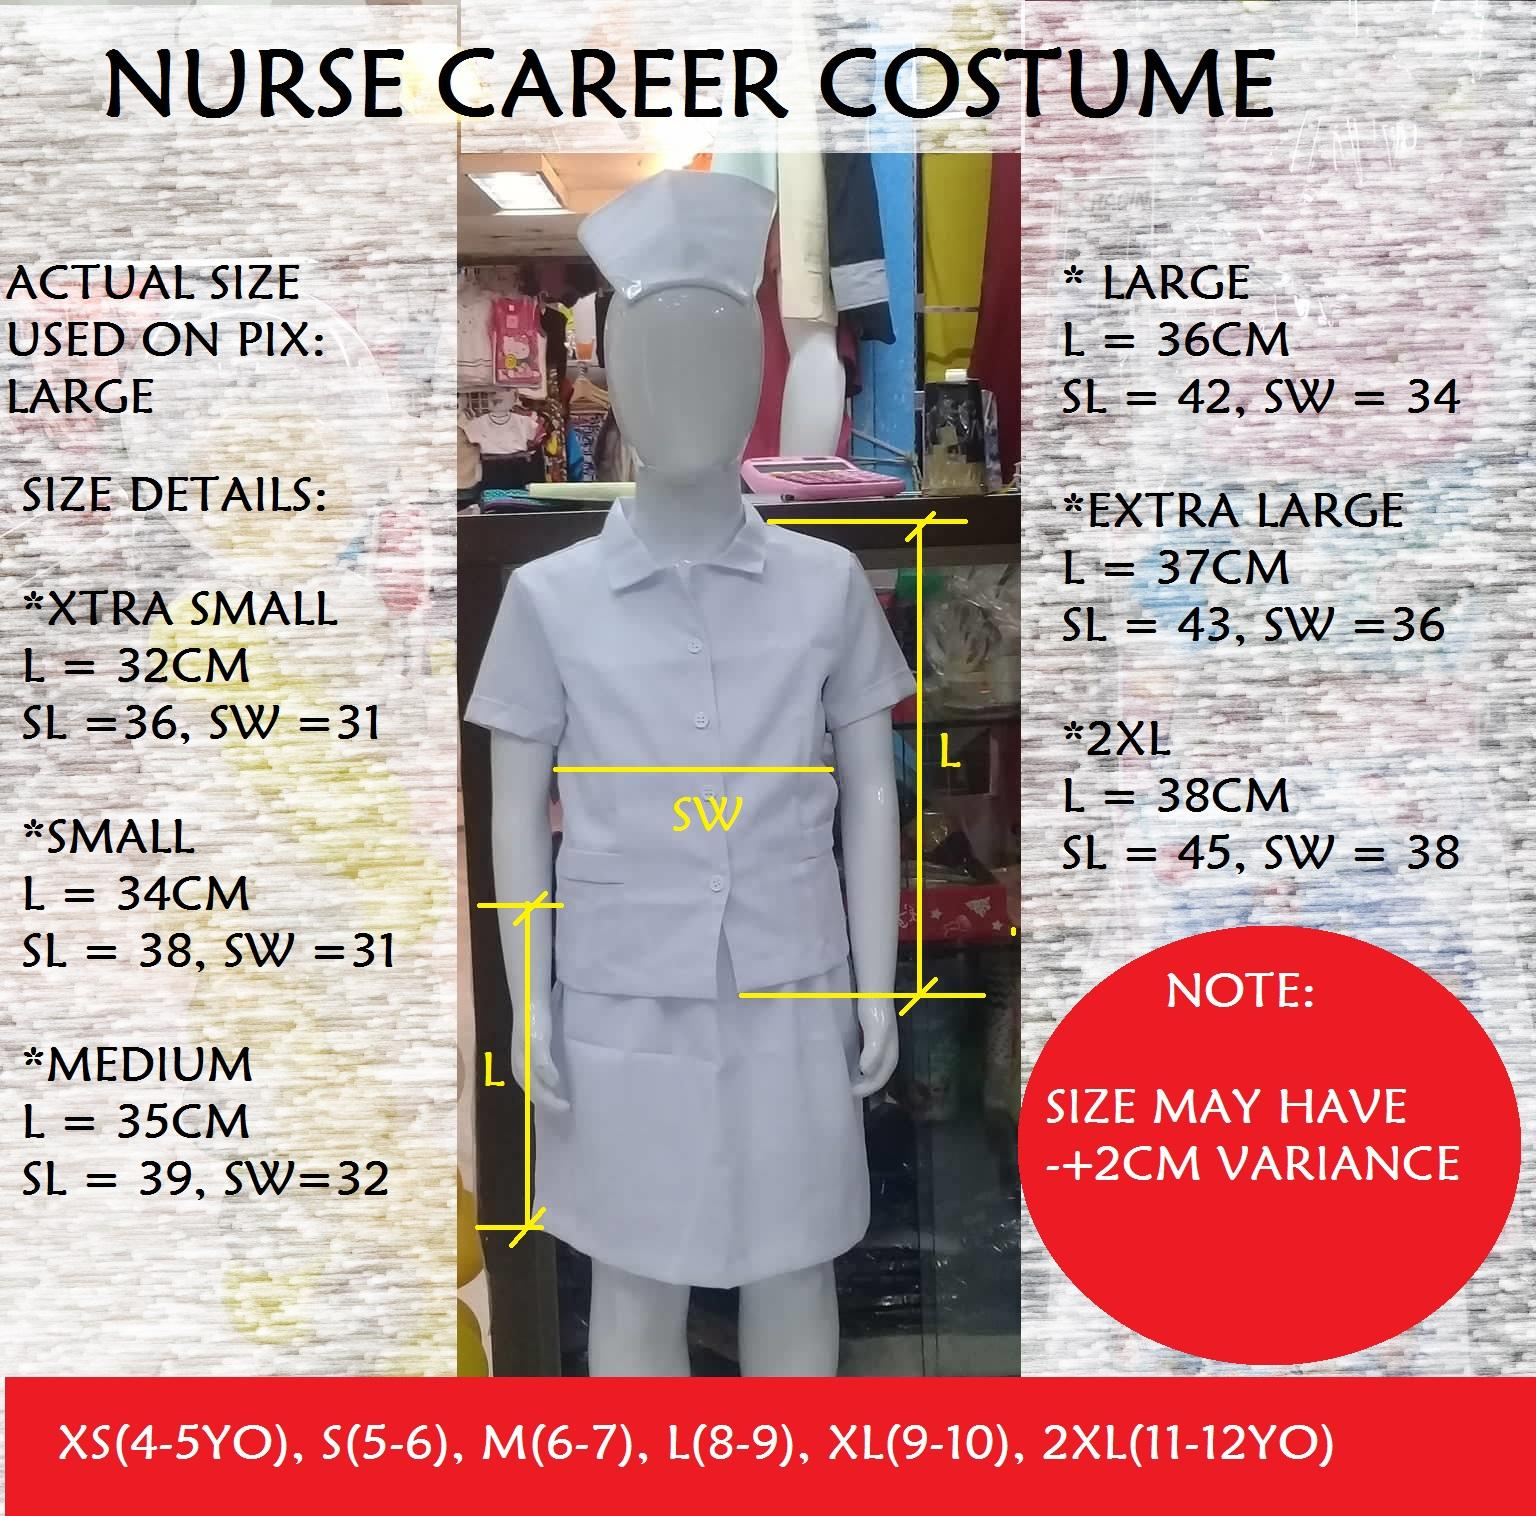 Nurse Career Costume for Kids · Nurse Career Costume for Kids. ₱550.00. (1). Philippines. 5-8CM Tall 8pcs A Set Cute Toys Plants VS Zombies Game PVC Action ...